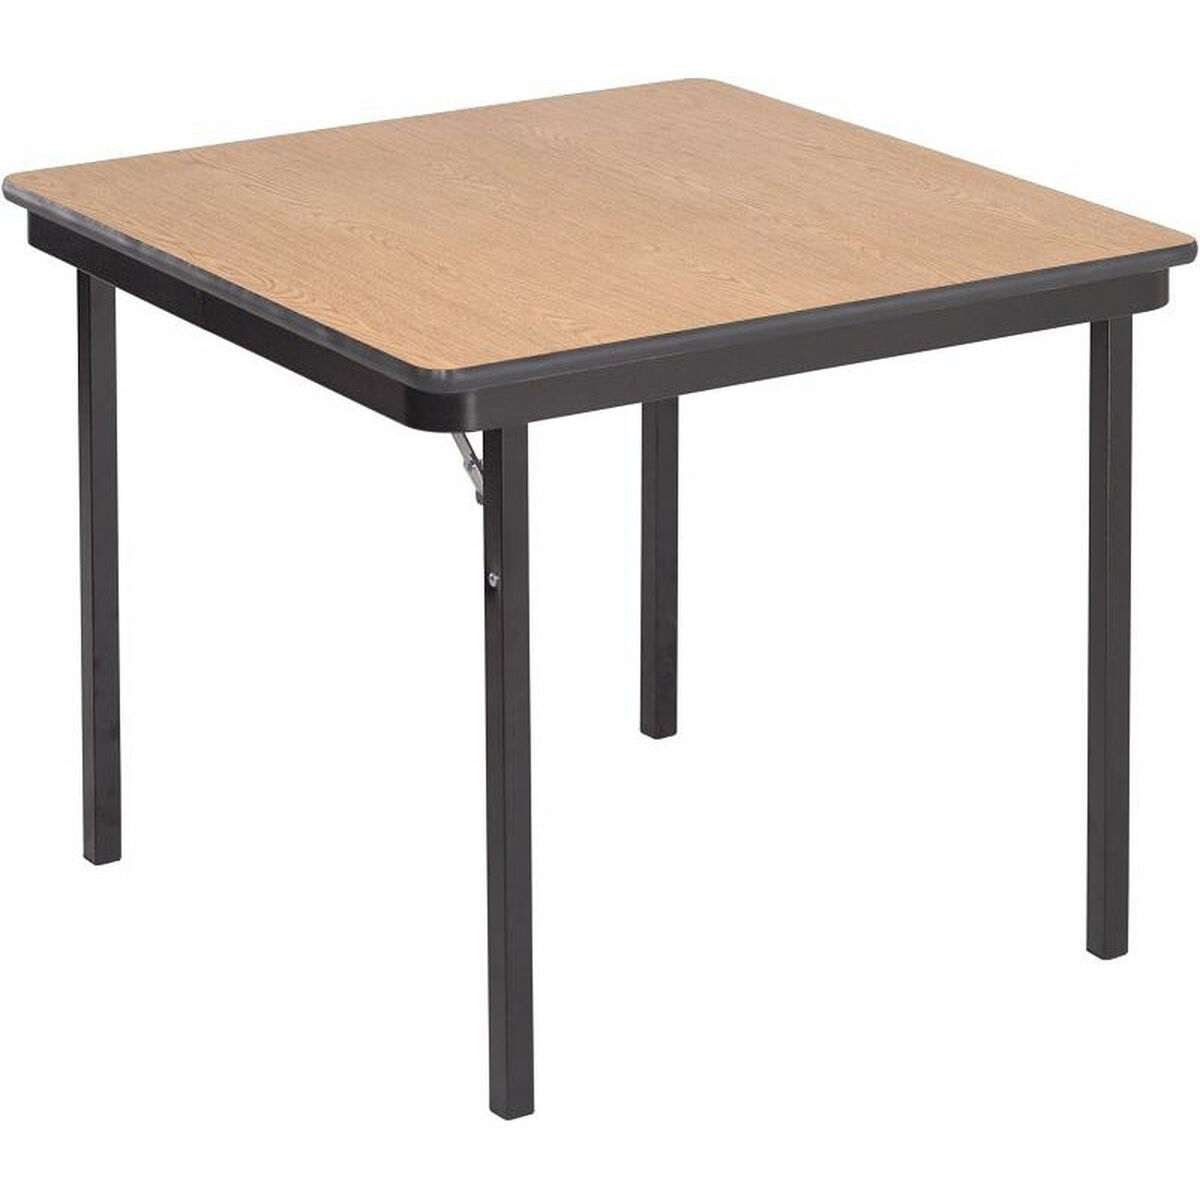 Our Square Folding Table With Particleboard Core And High Pressure Laminate Top 36